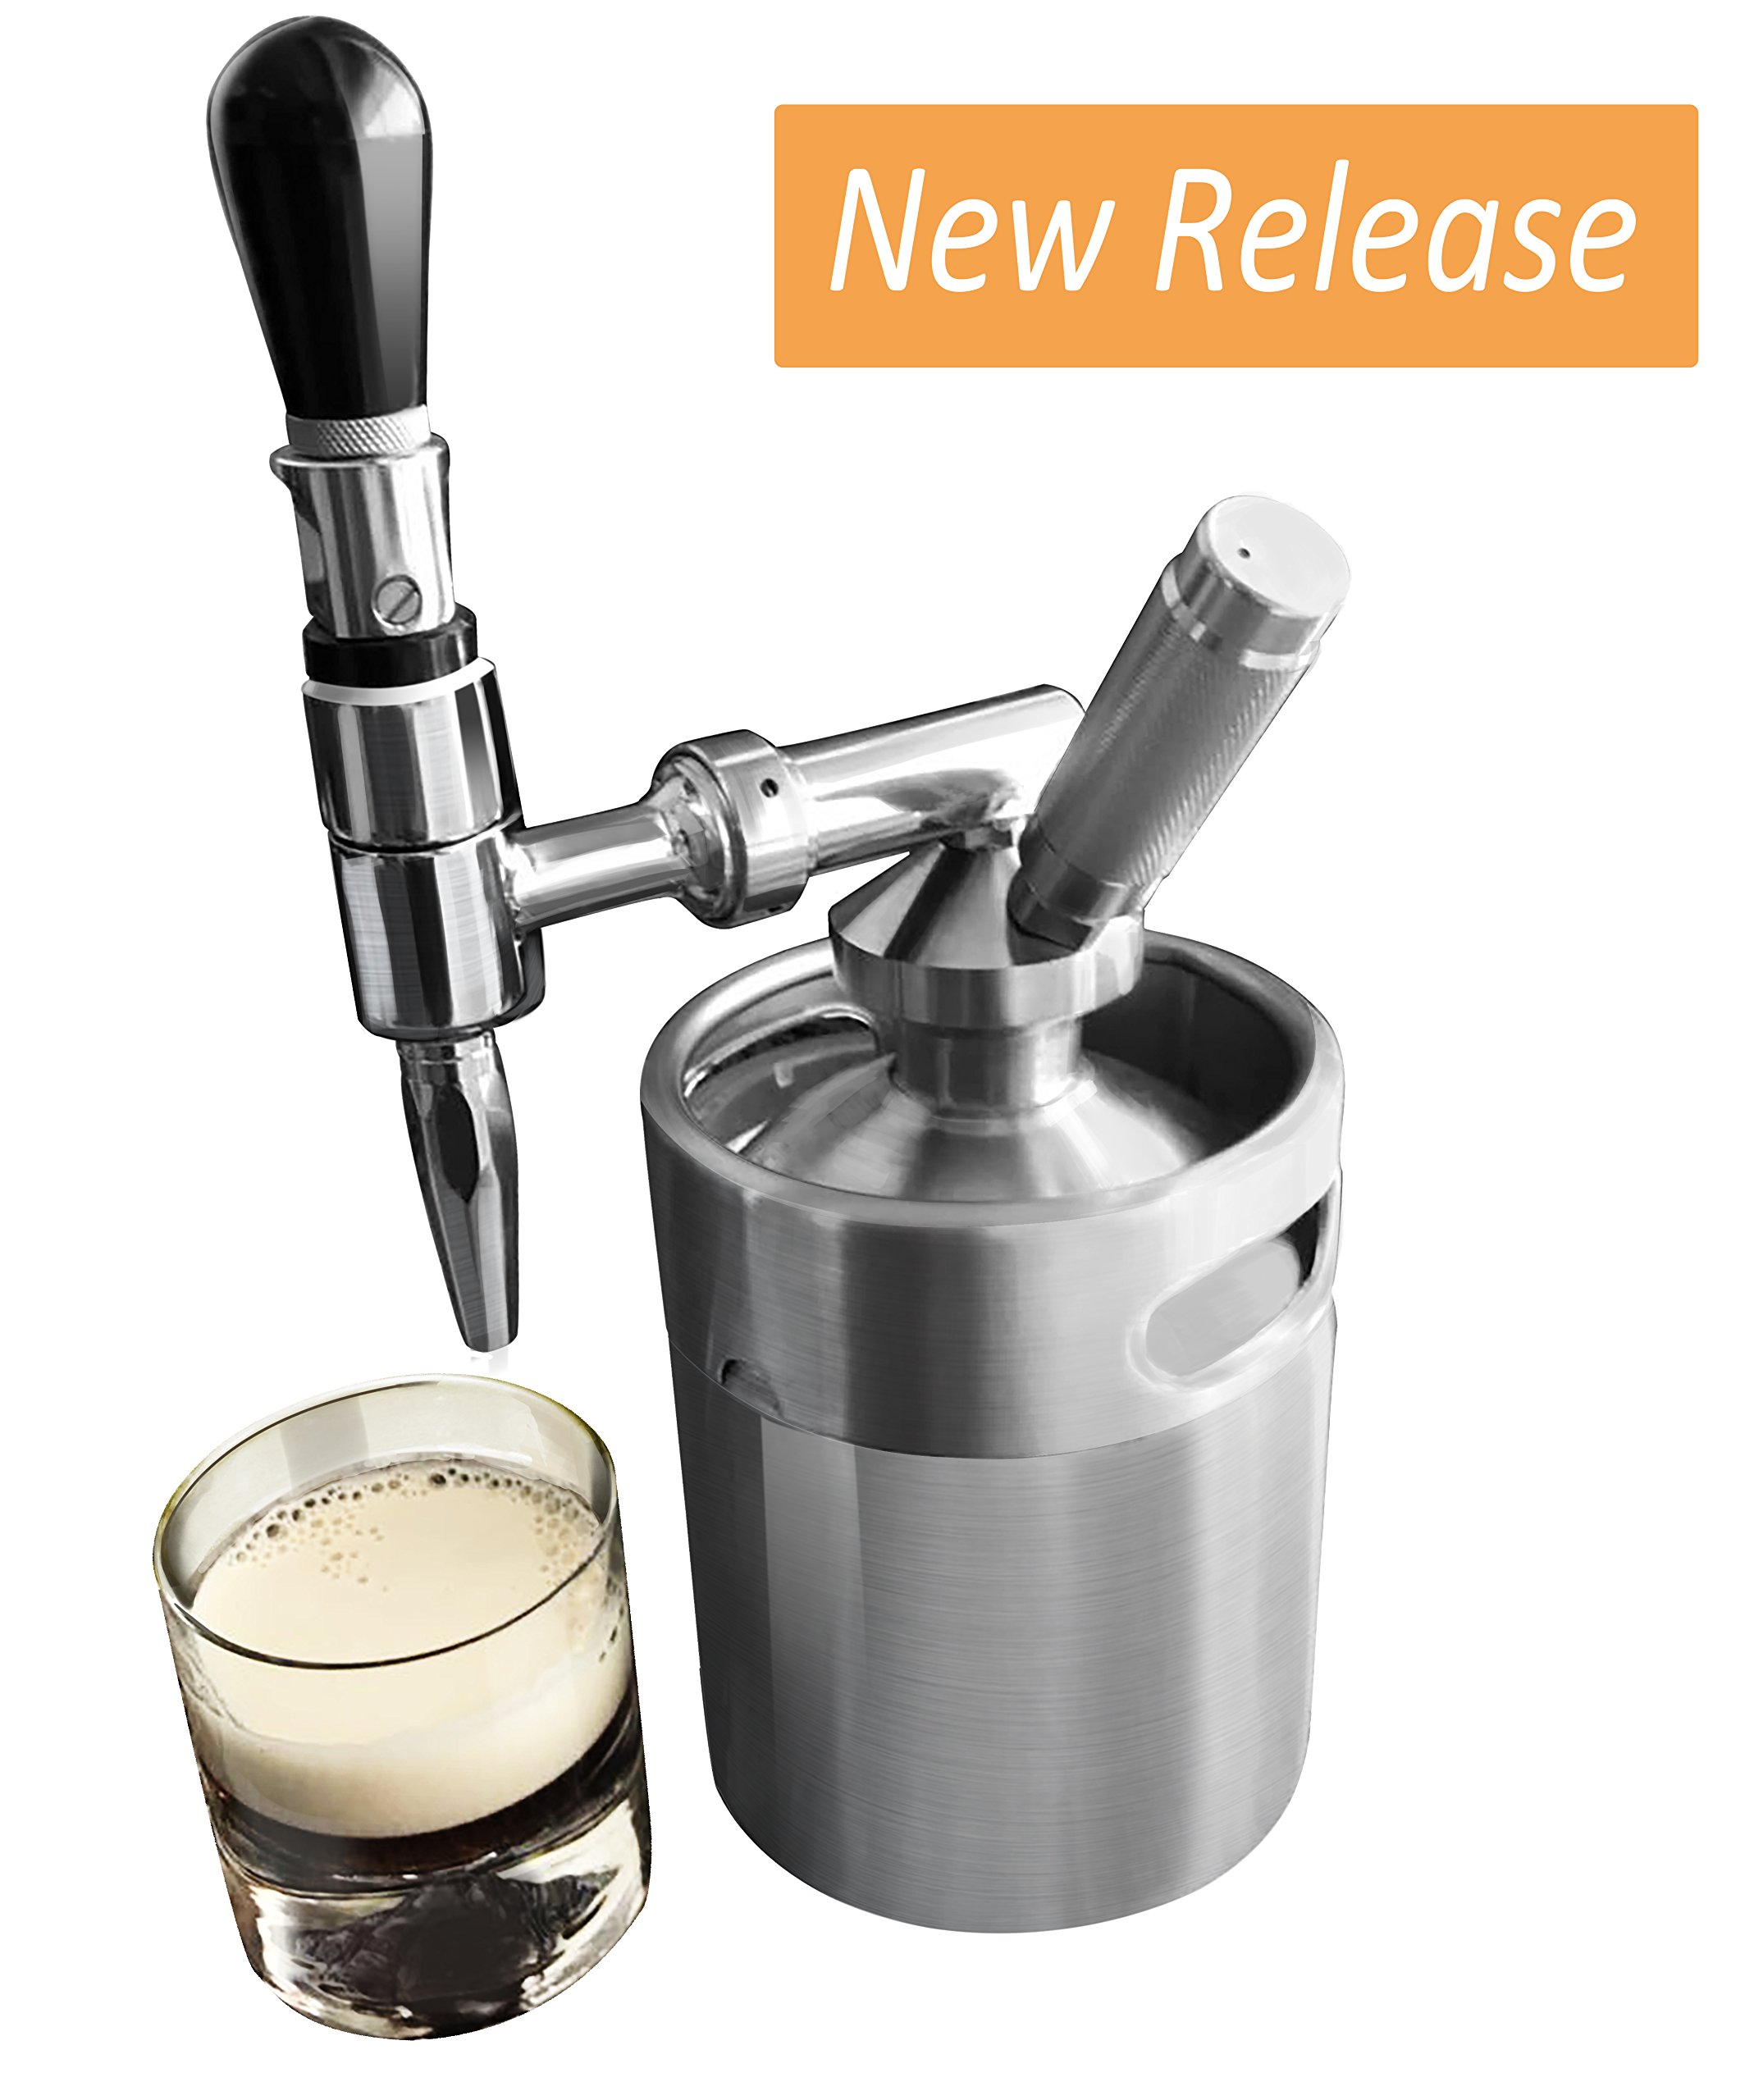 Lymor 64 Ounce Mini Stainless Steel Homebrew Coffee Keg System Kit, Nitro Cold Brew Coffee Maker, Best Gift for Coffee Lovers by Lymor